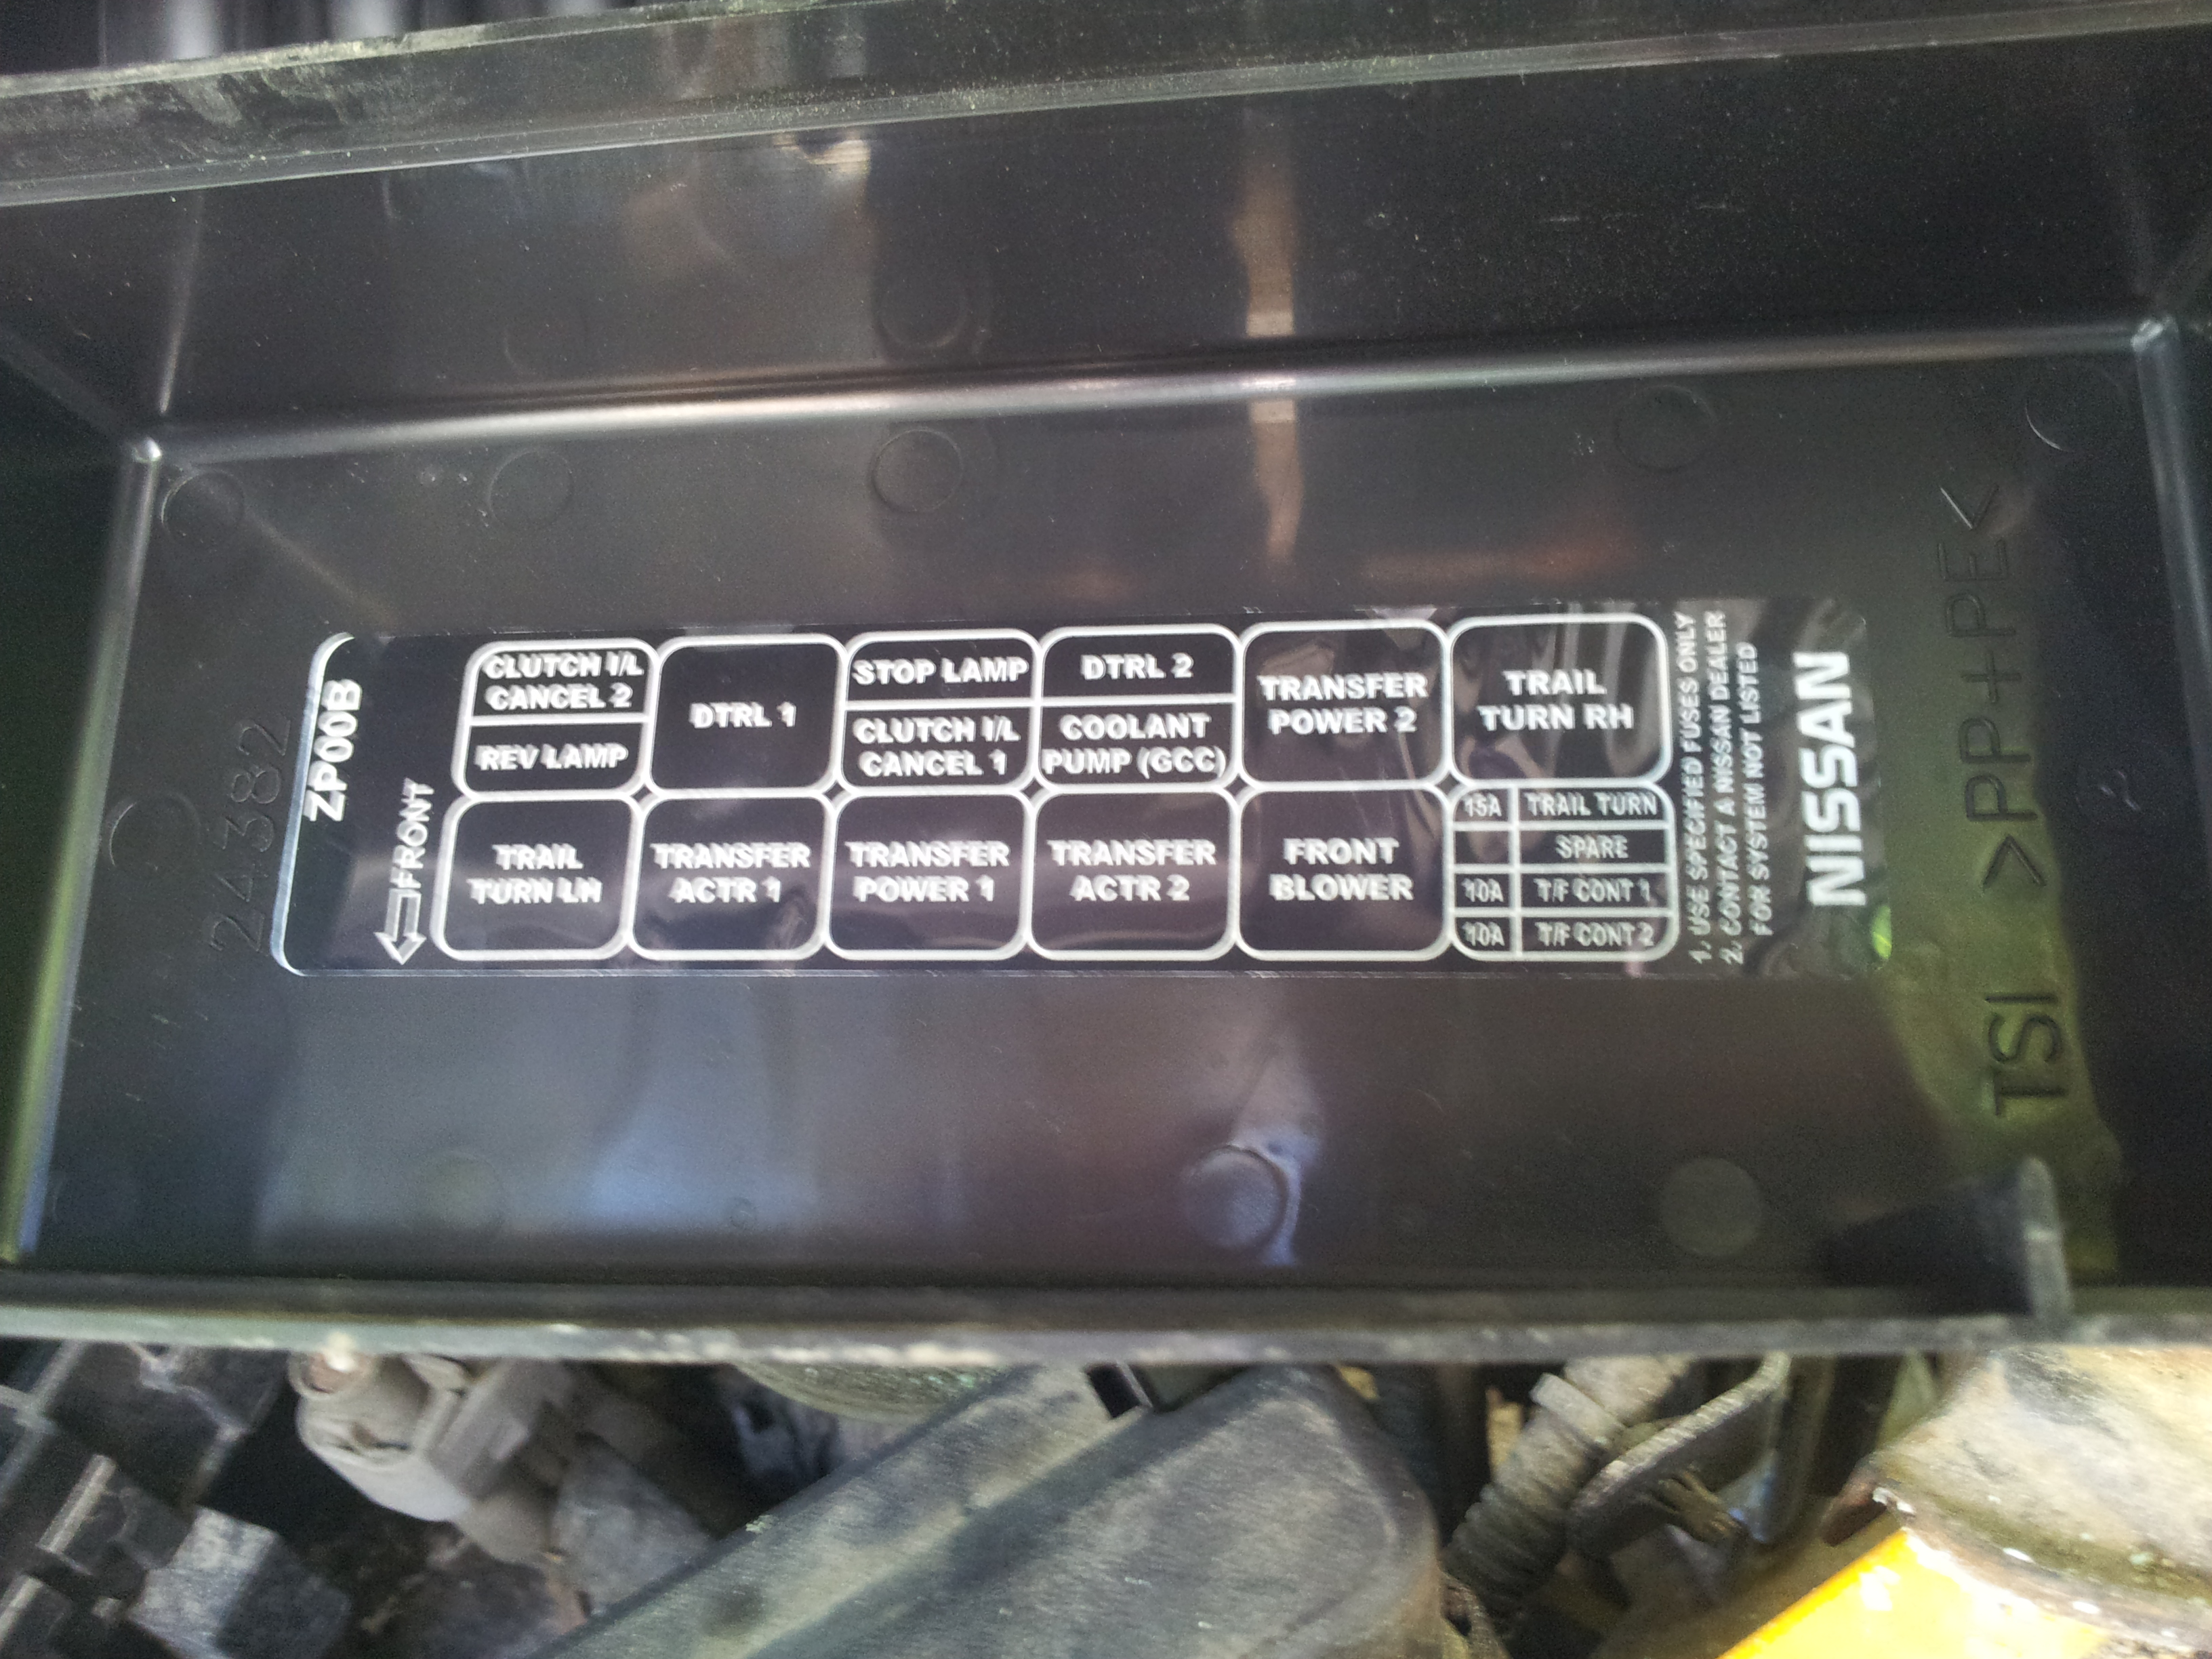 2013 Maxima Fuse Box Diagram 2014 Nissan Wiring Library 2000 Headlight 2004 Location